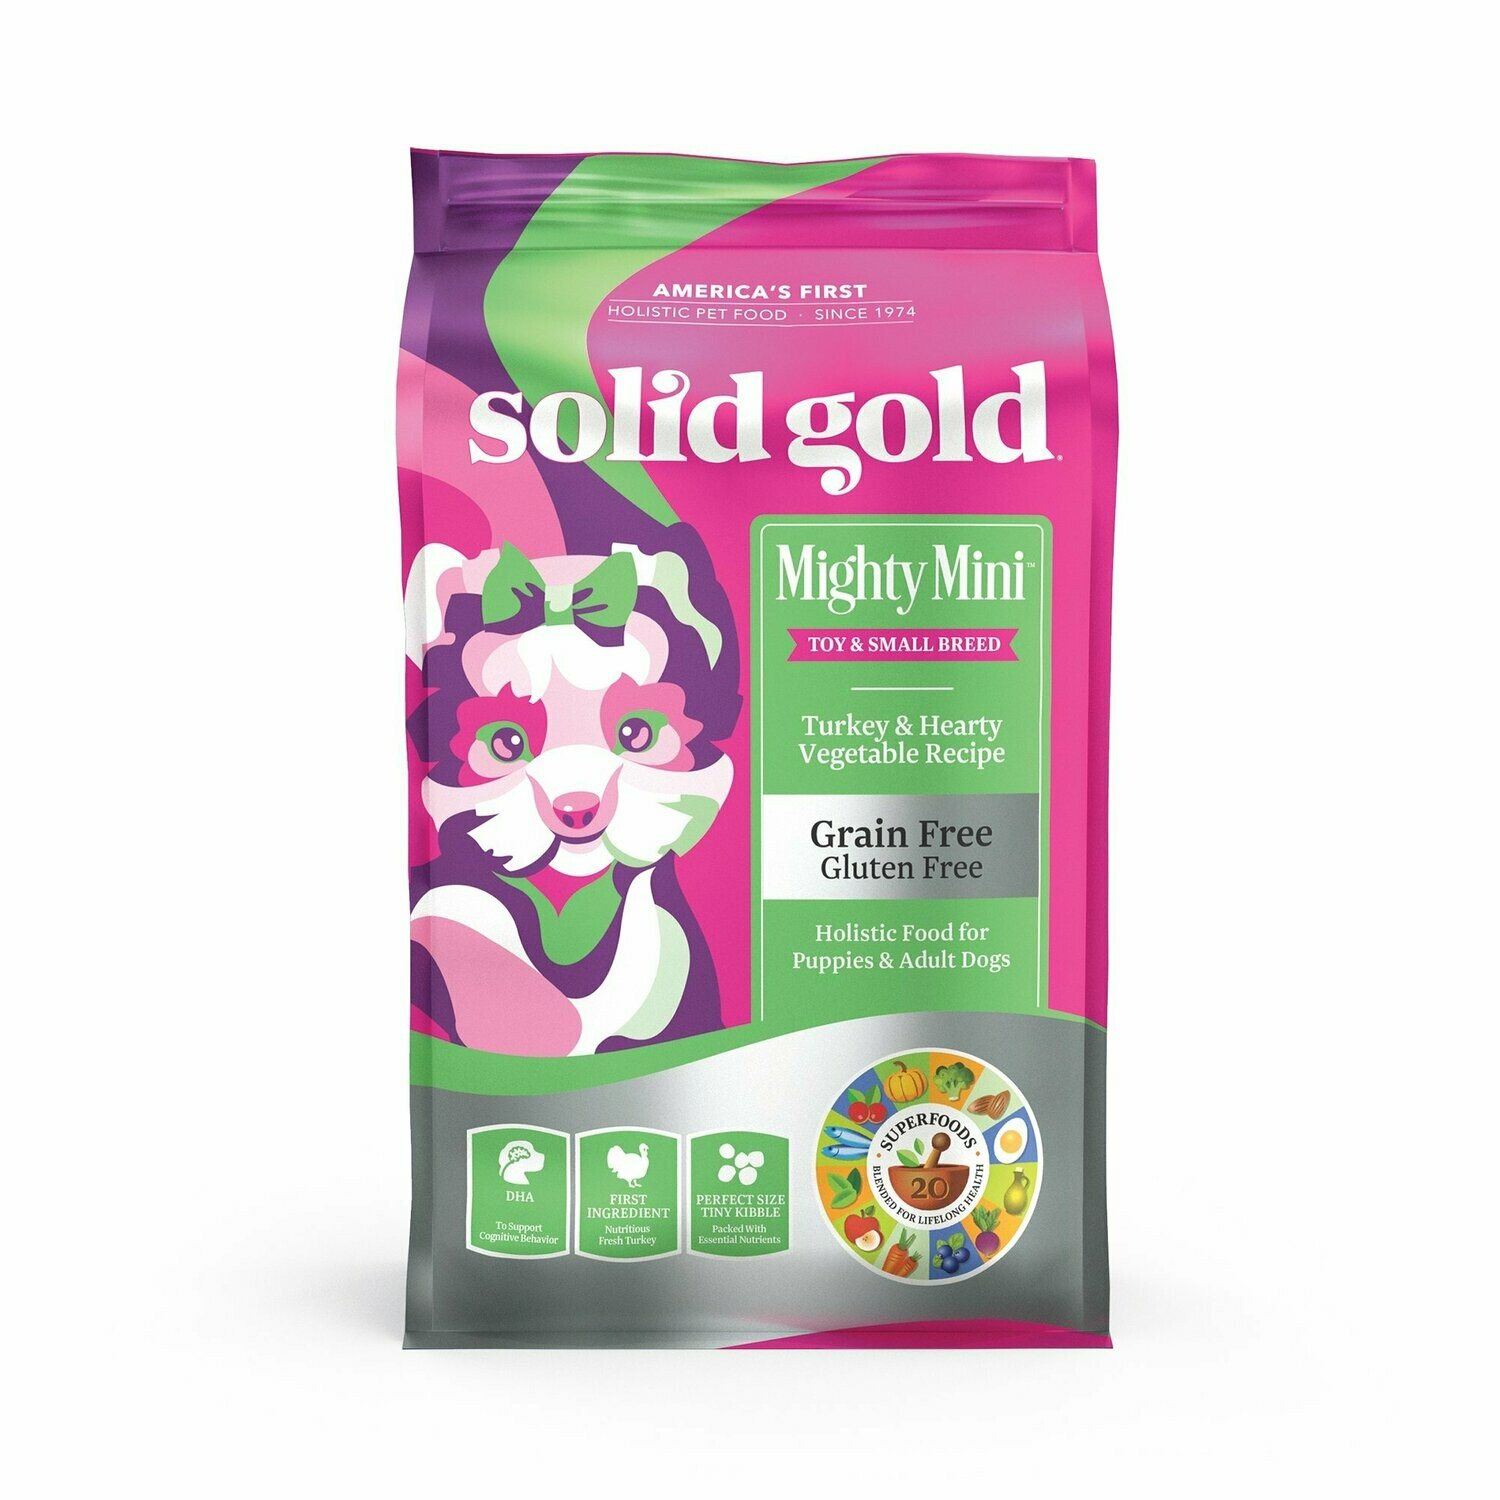 Solid Gold Grain Free Mighty Mini Turkey & Hearty Vegetable Dry Dog Food, 11 lbs (9/19) (A.E2)